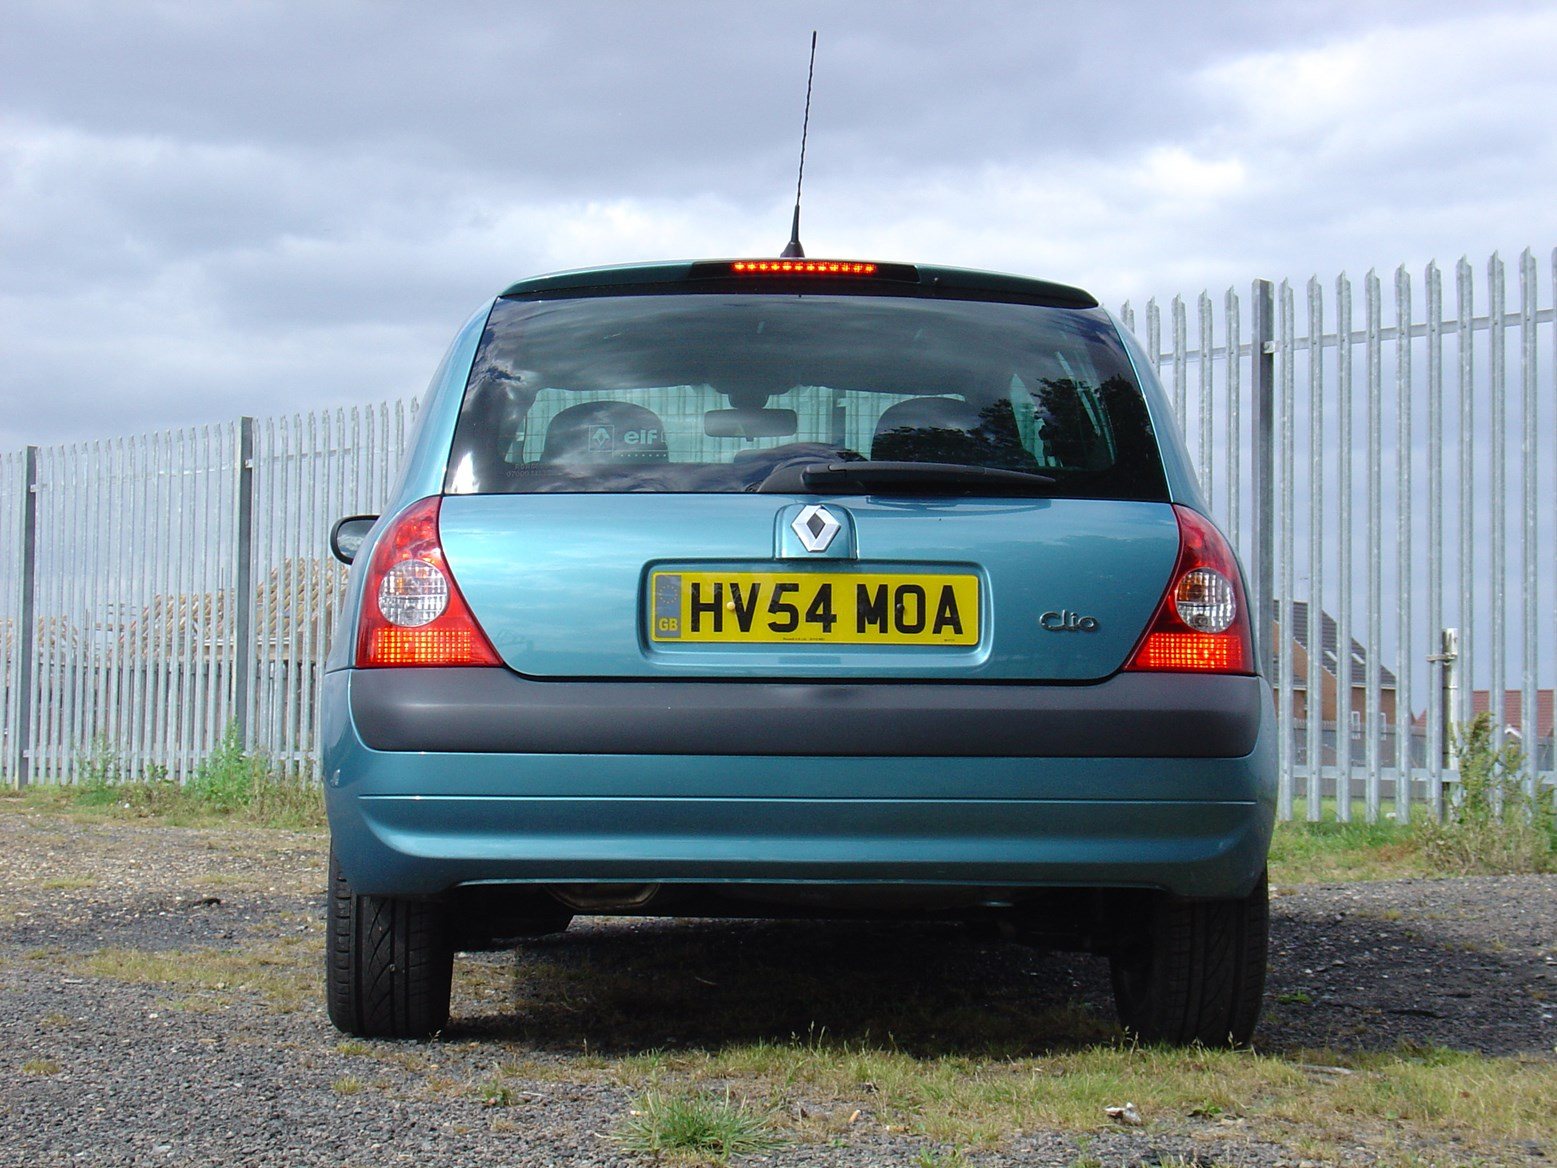 Used Renault Clio Hatchback 2001 2008 Practicality Parkers